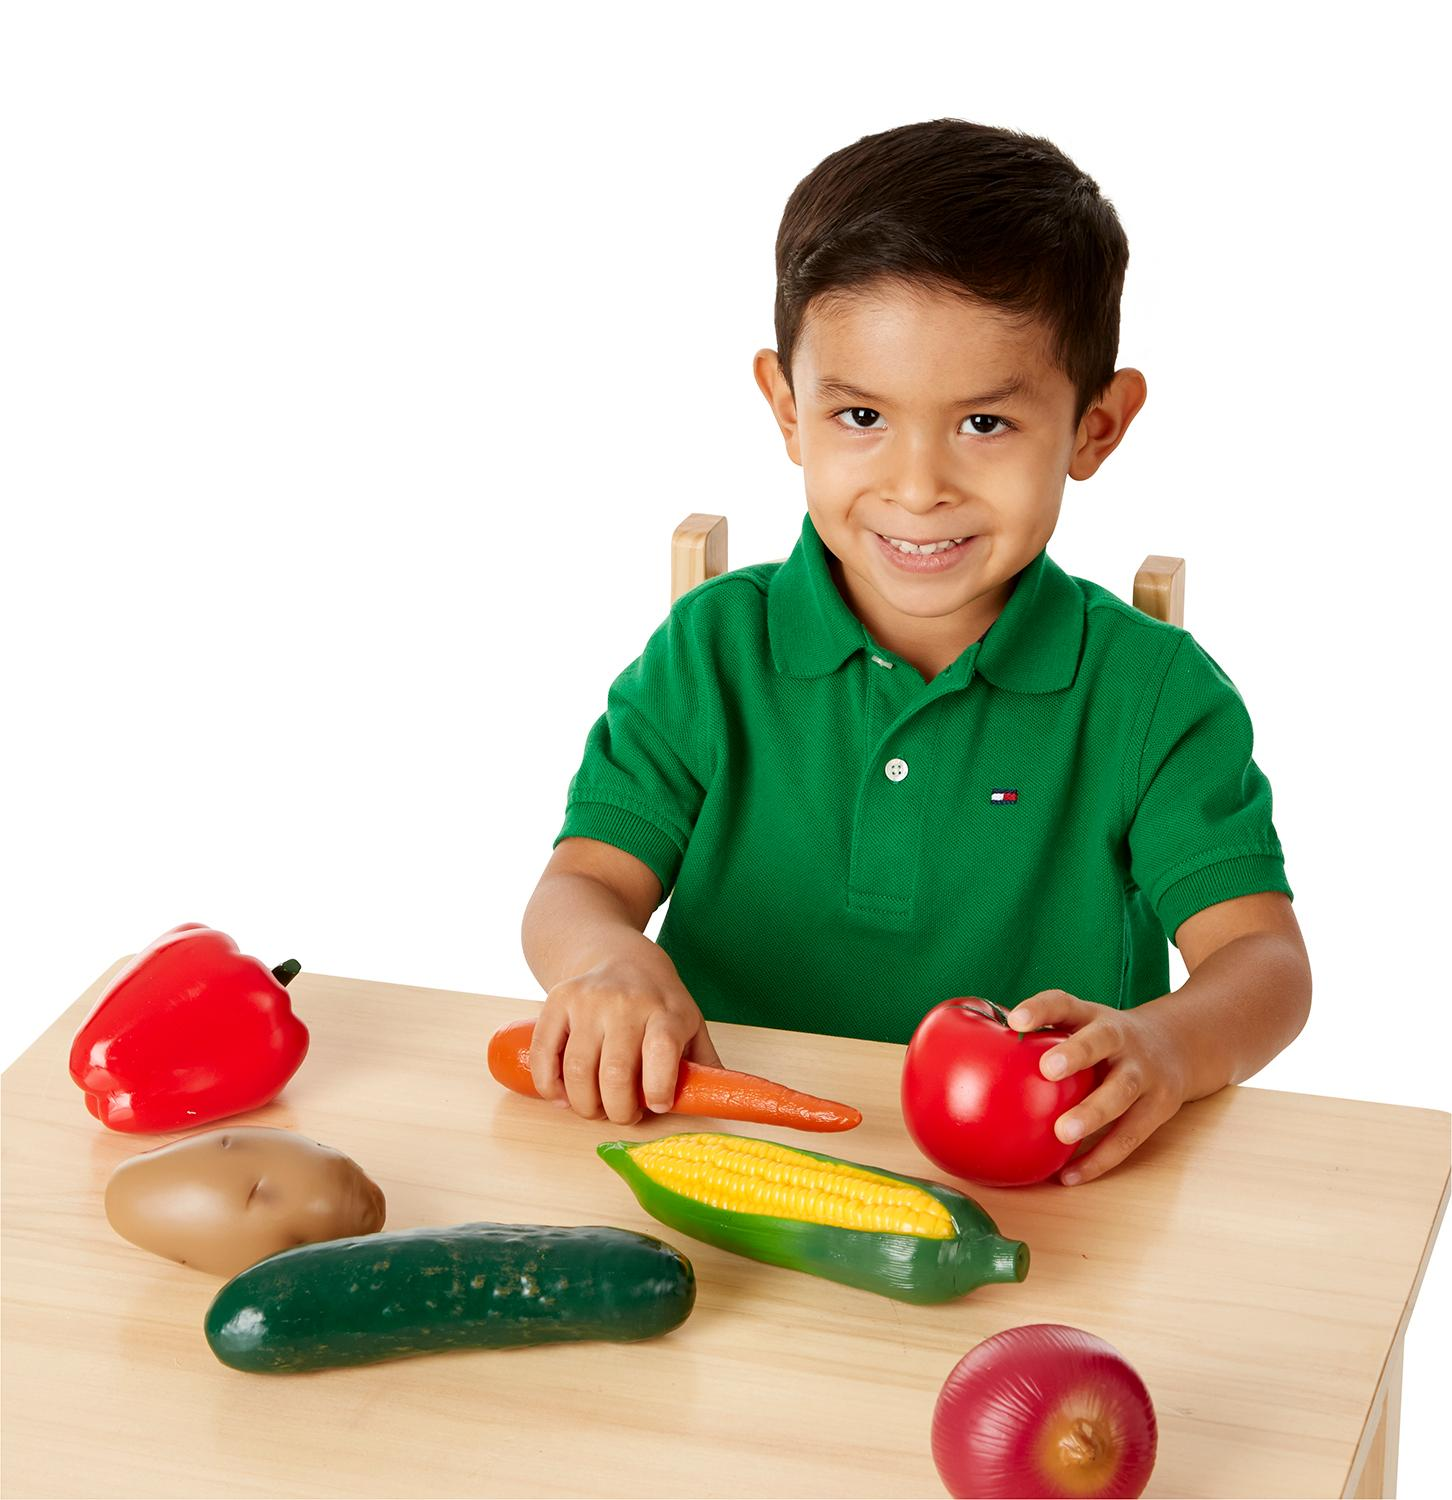 Melissa & Doug Playtime Produce Vegetables Play Food Set With Crate (7